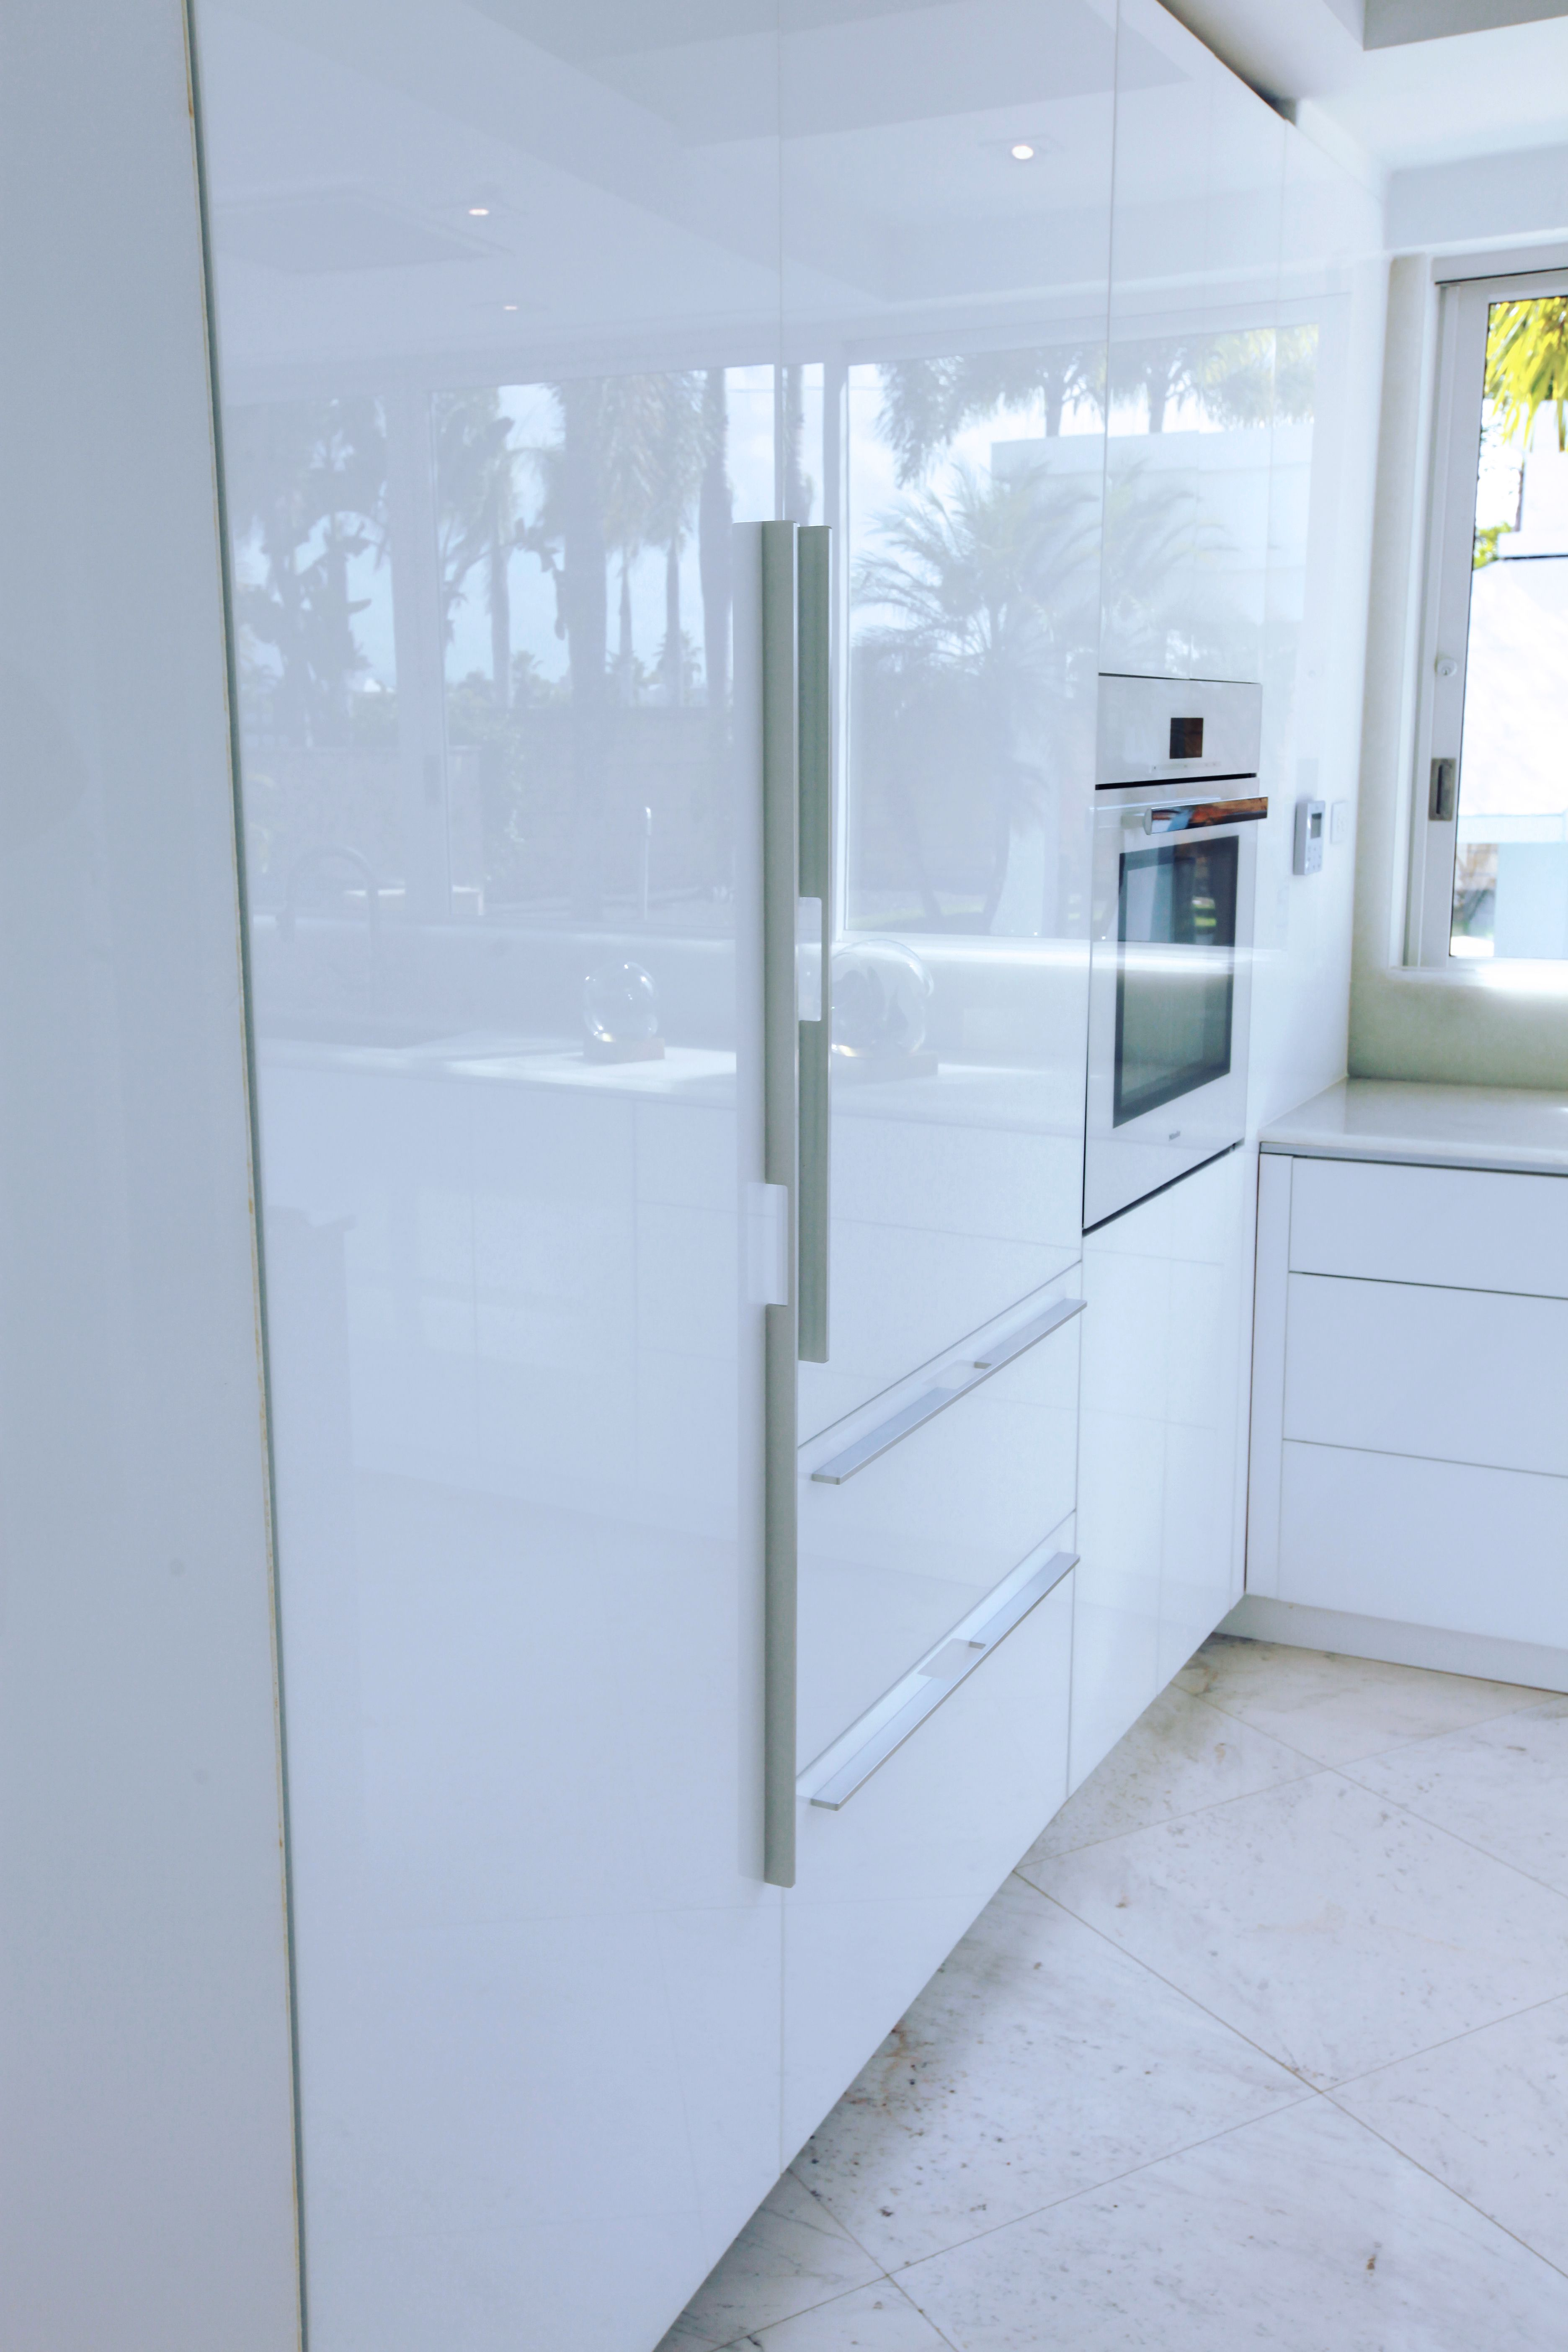 Get Beautiful Reflective Quality With Rauvisio Crystal Glass Cabinet Doors In High Gloss Modern Kitchen